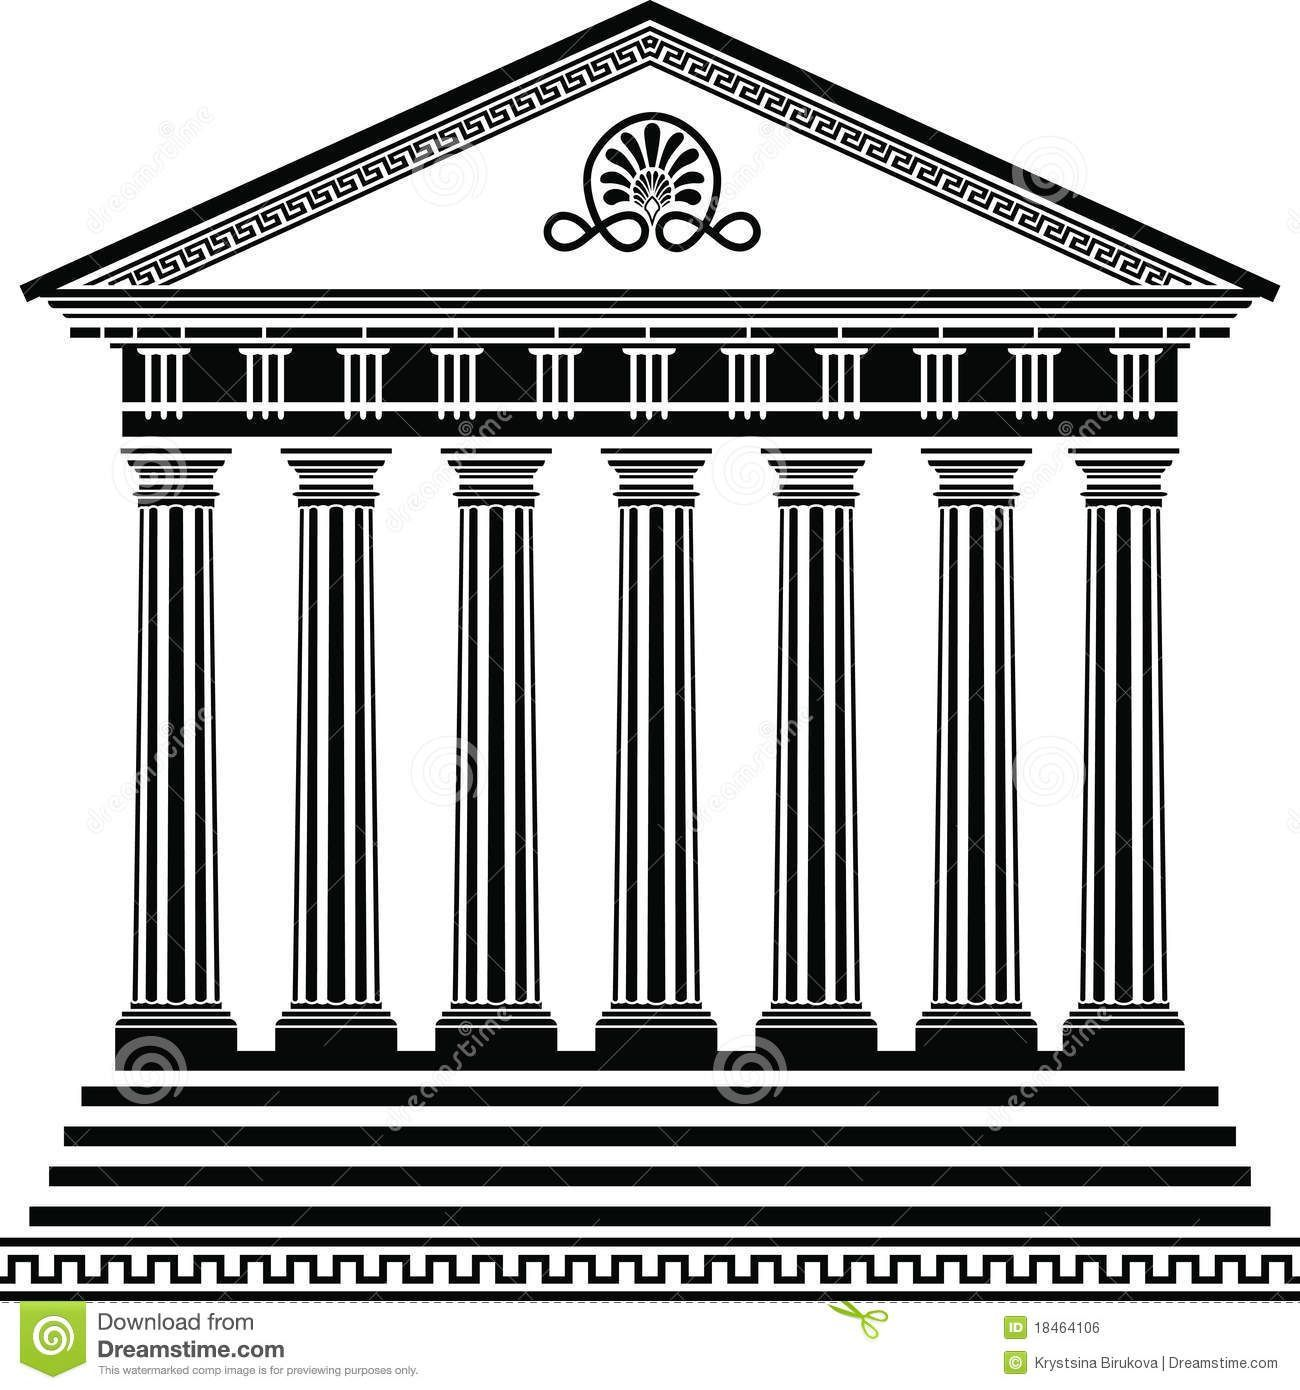 Temple clipart greek building #1.